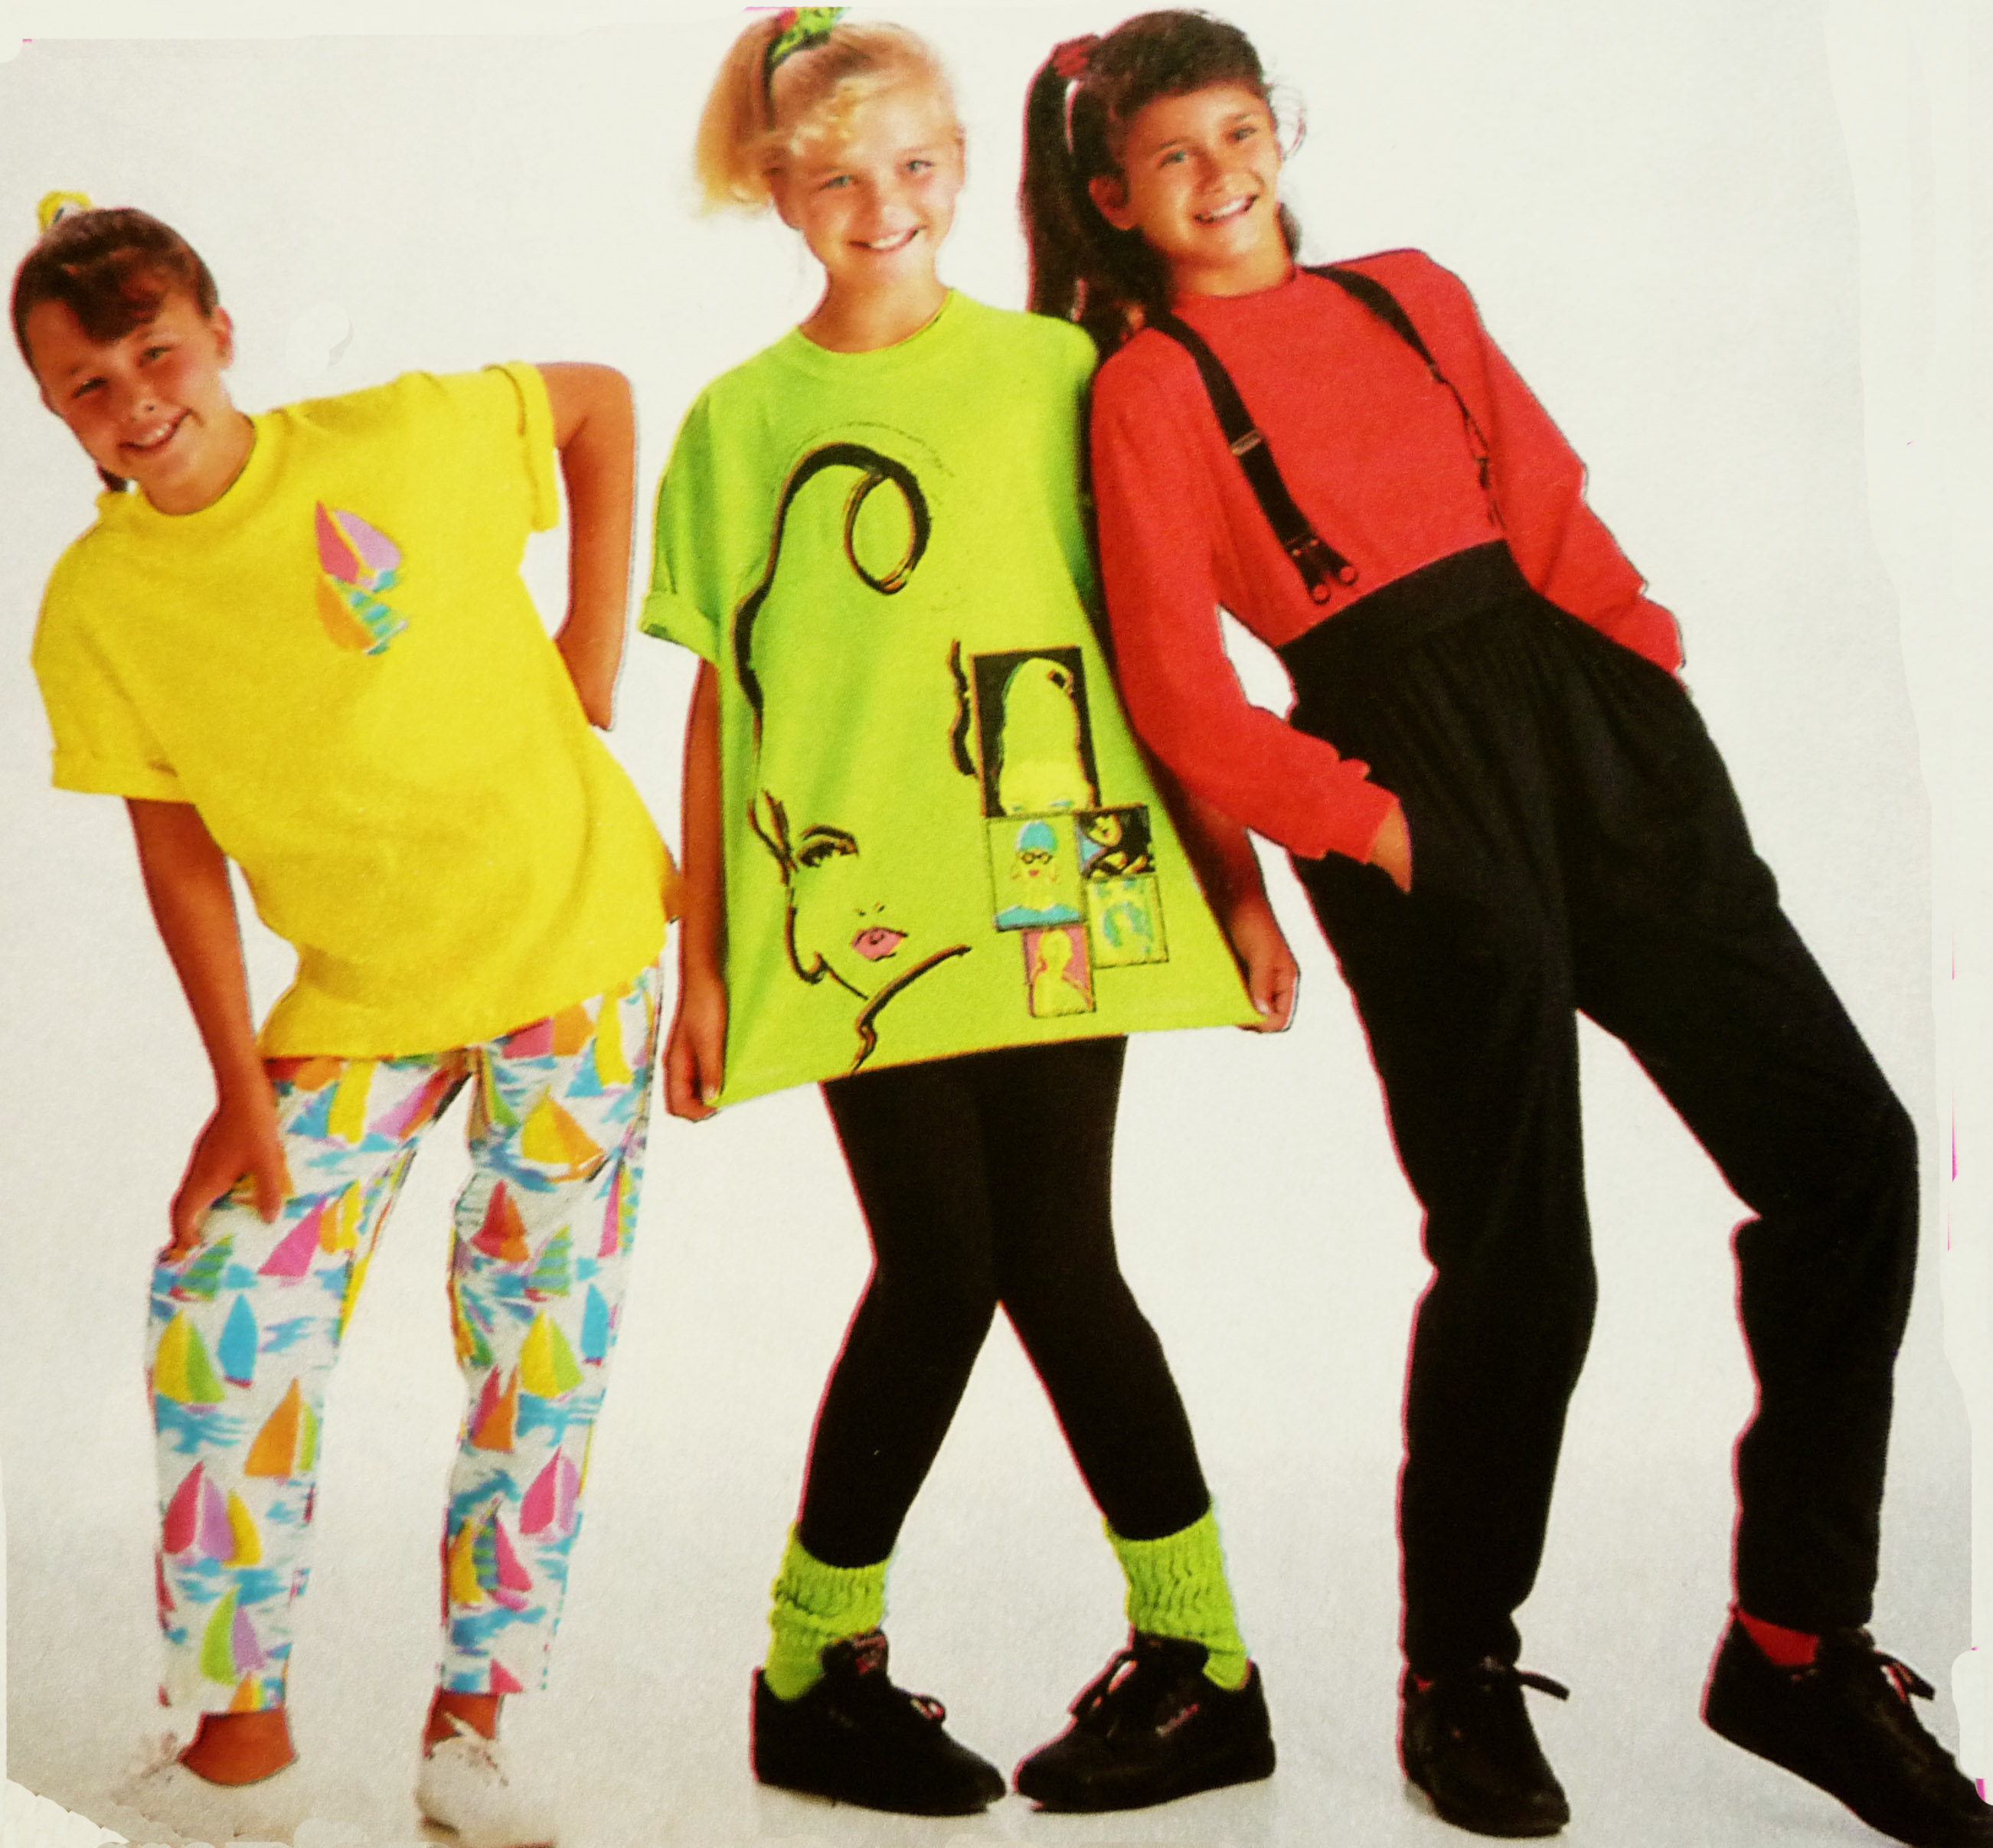 How did girls dress in the 80's?